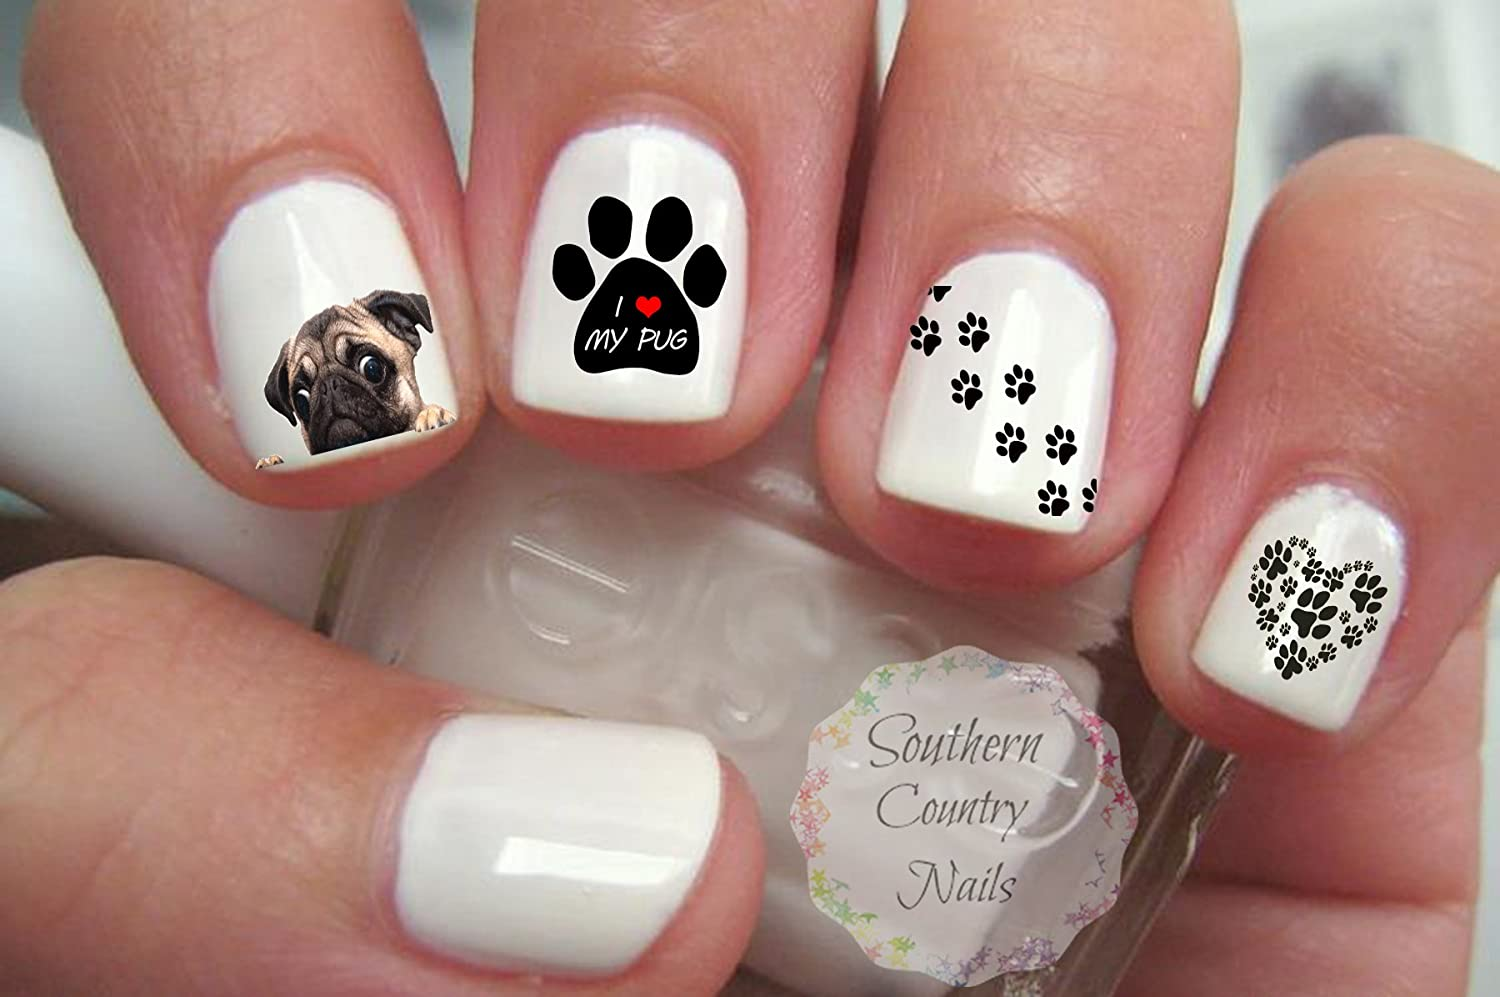 Amazon.com : Pug Nail Art Decals : Beauty